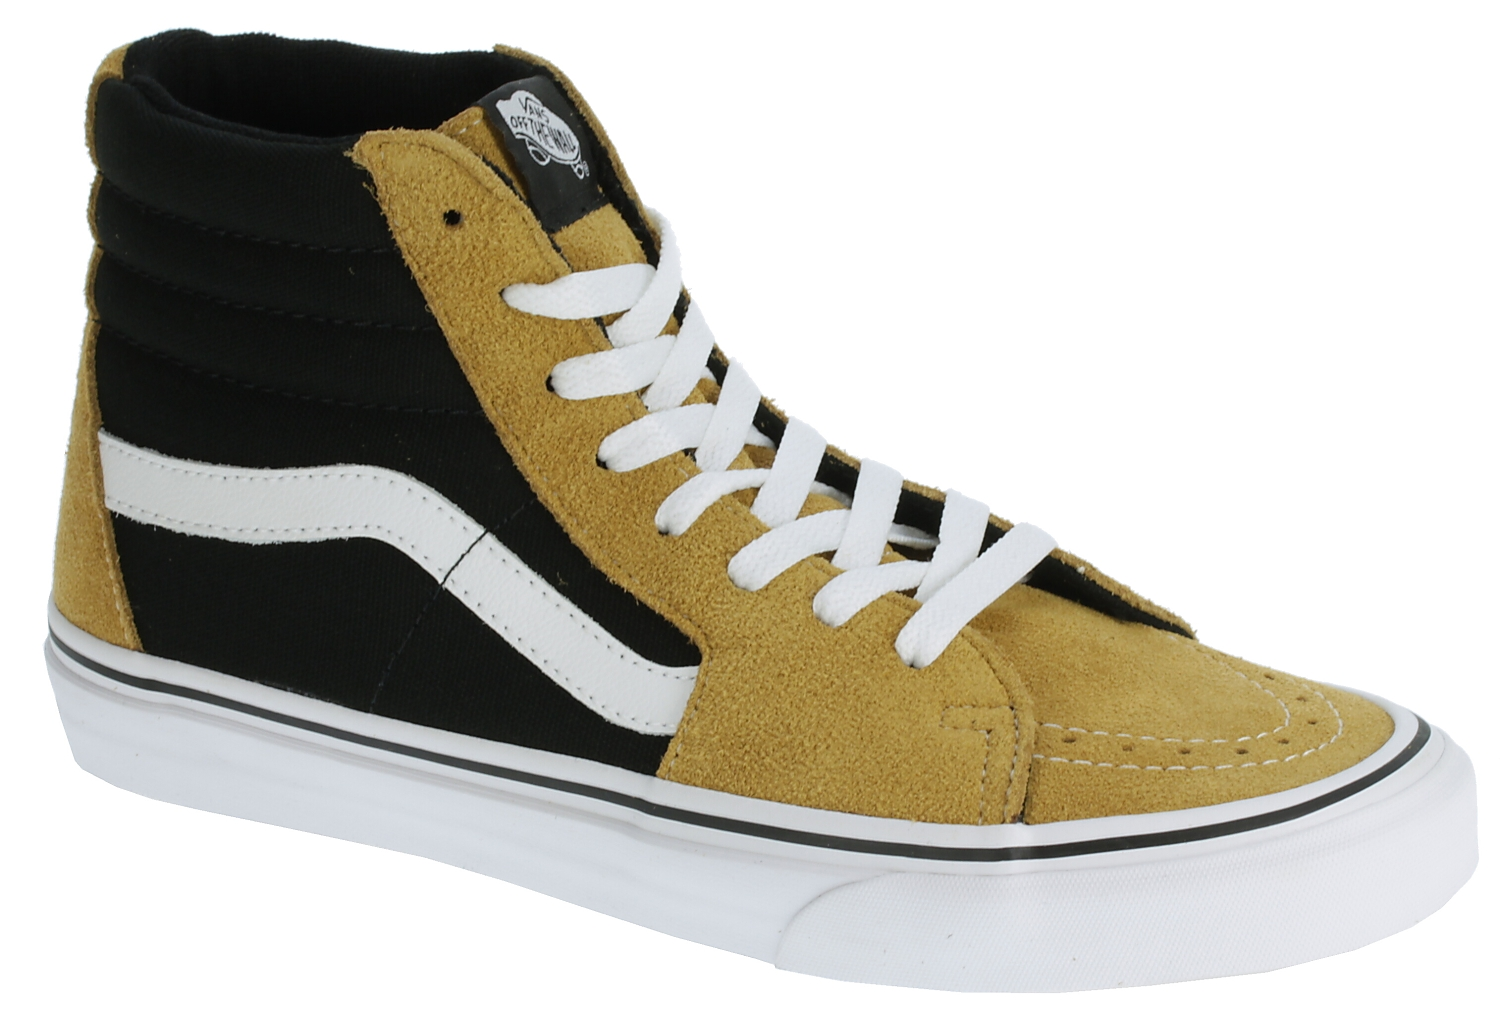 0daffb42157044 shoes Vans SK8-Hi - Suede Honey Mustard Black - Snowboard shop ...